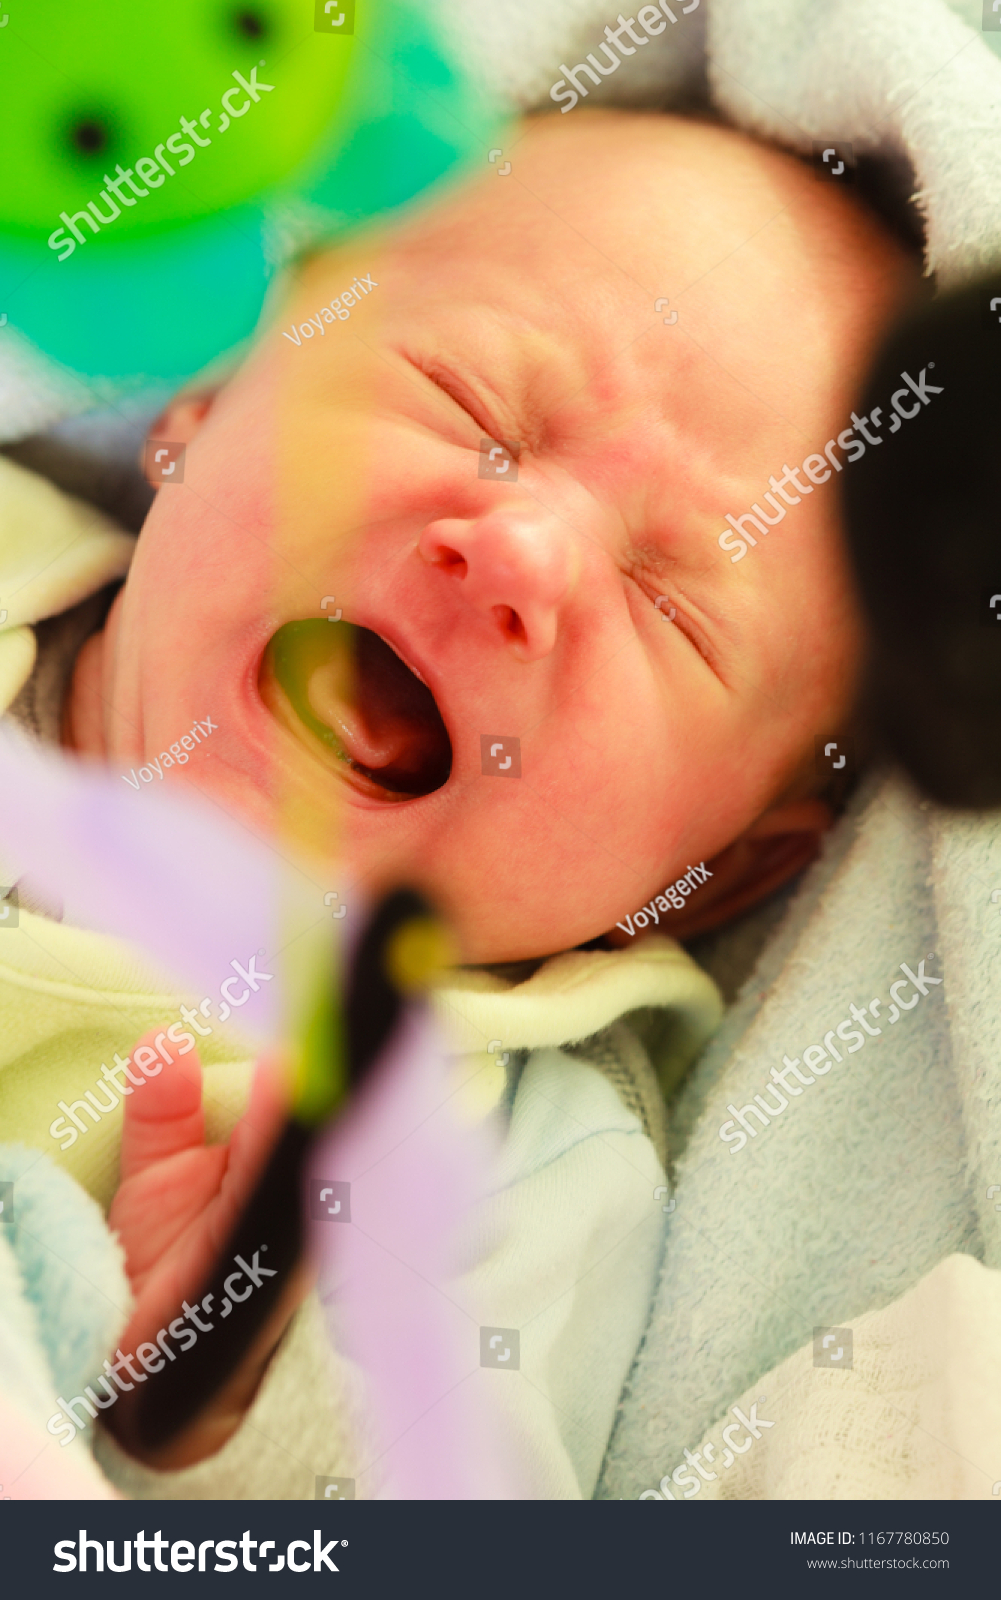 Little newborn baby crying in baby cot